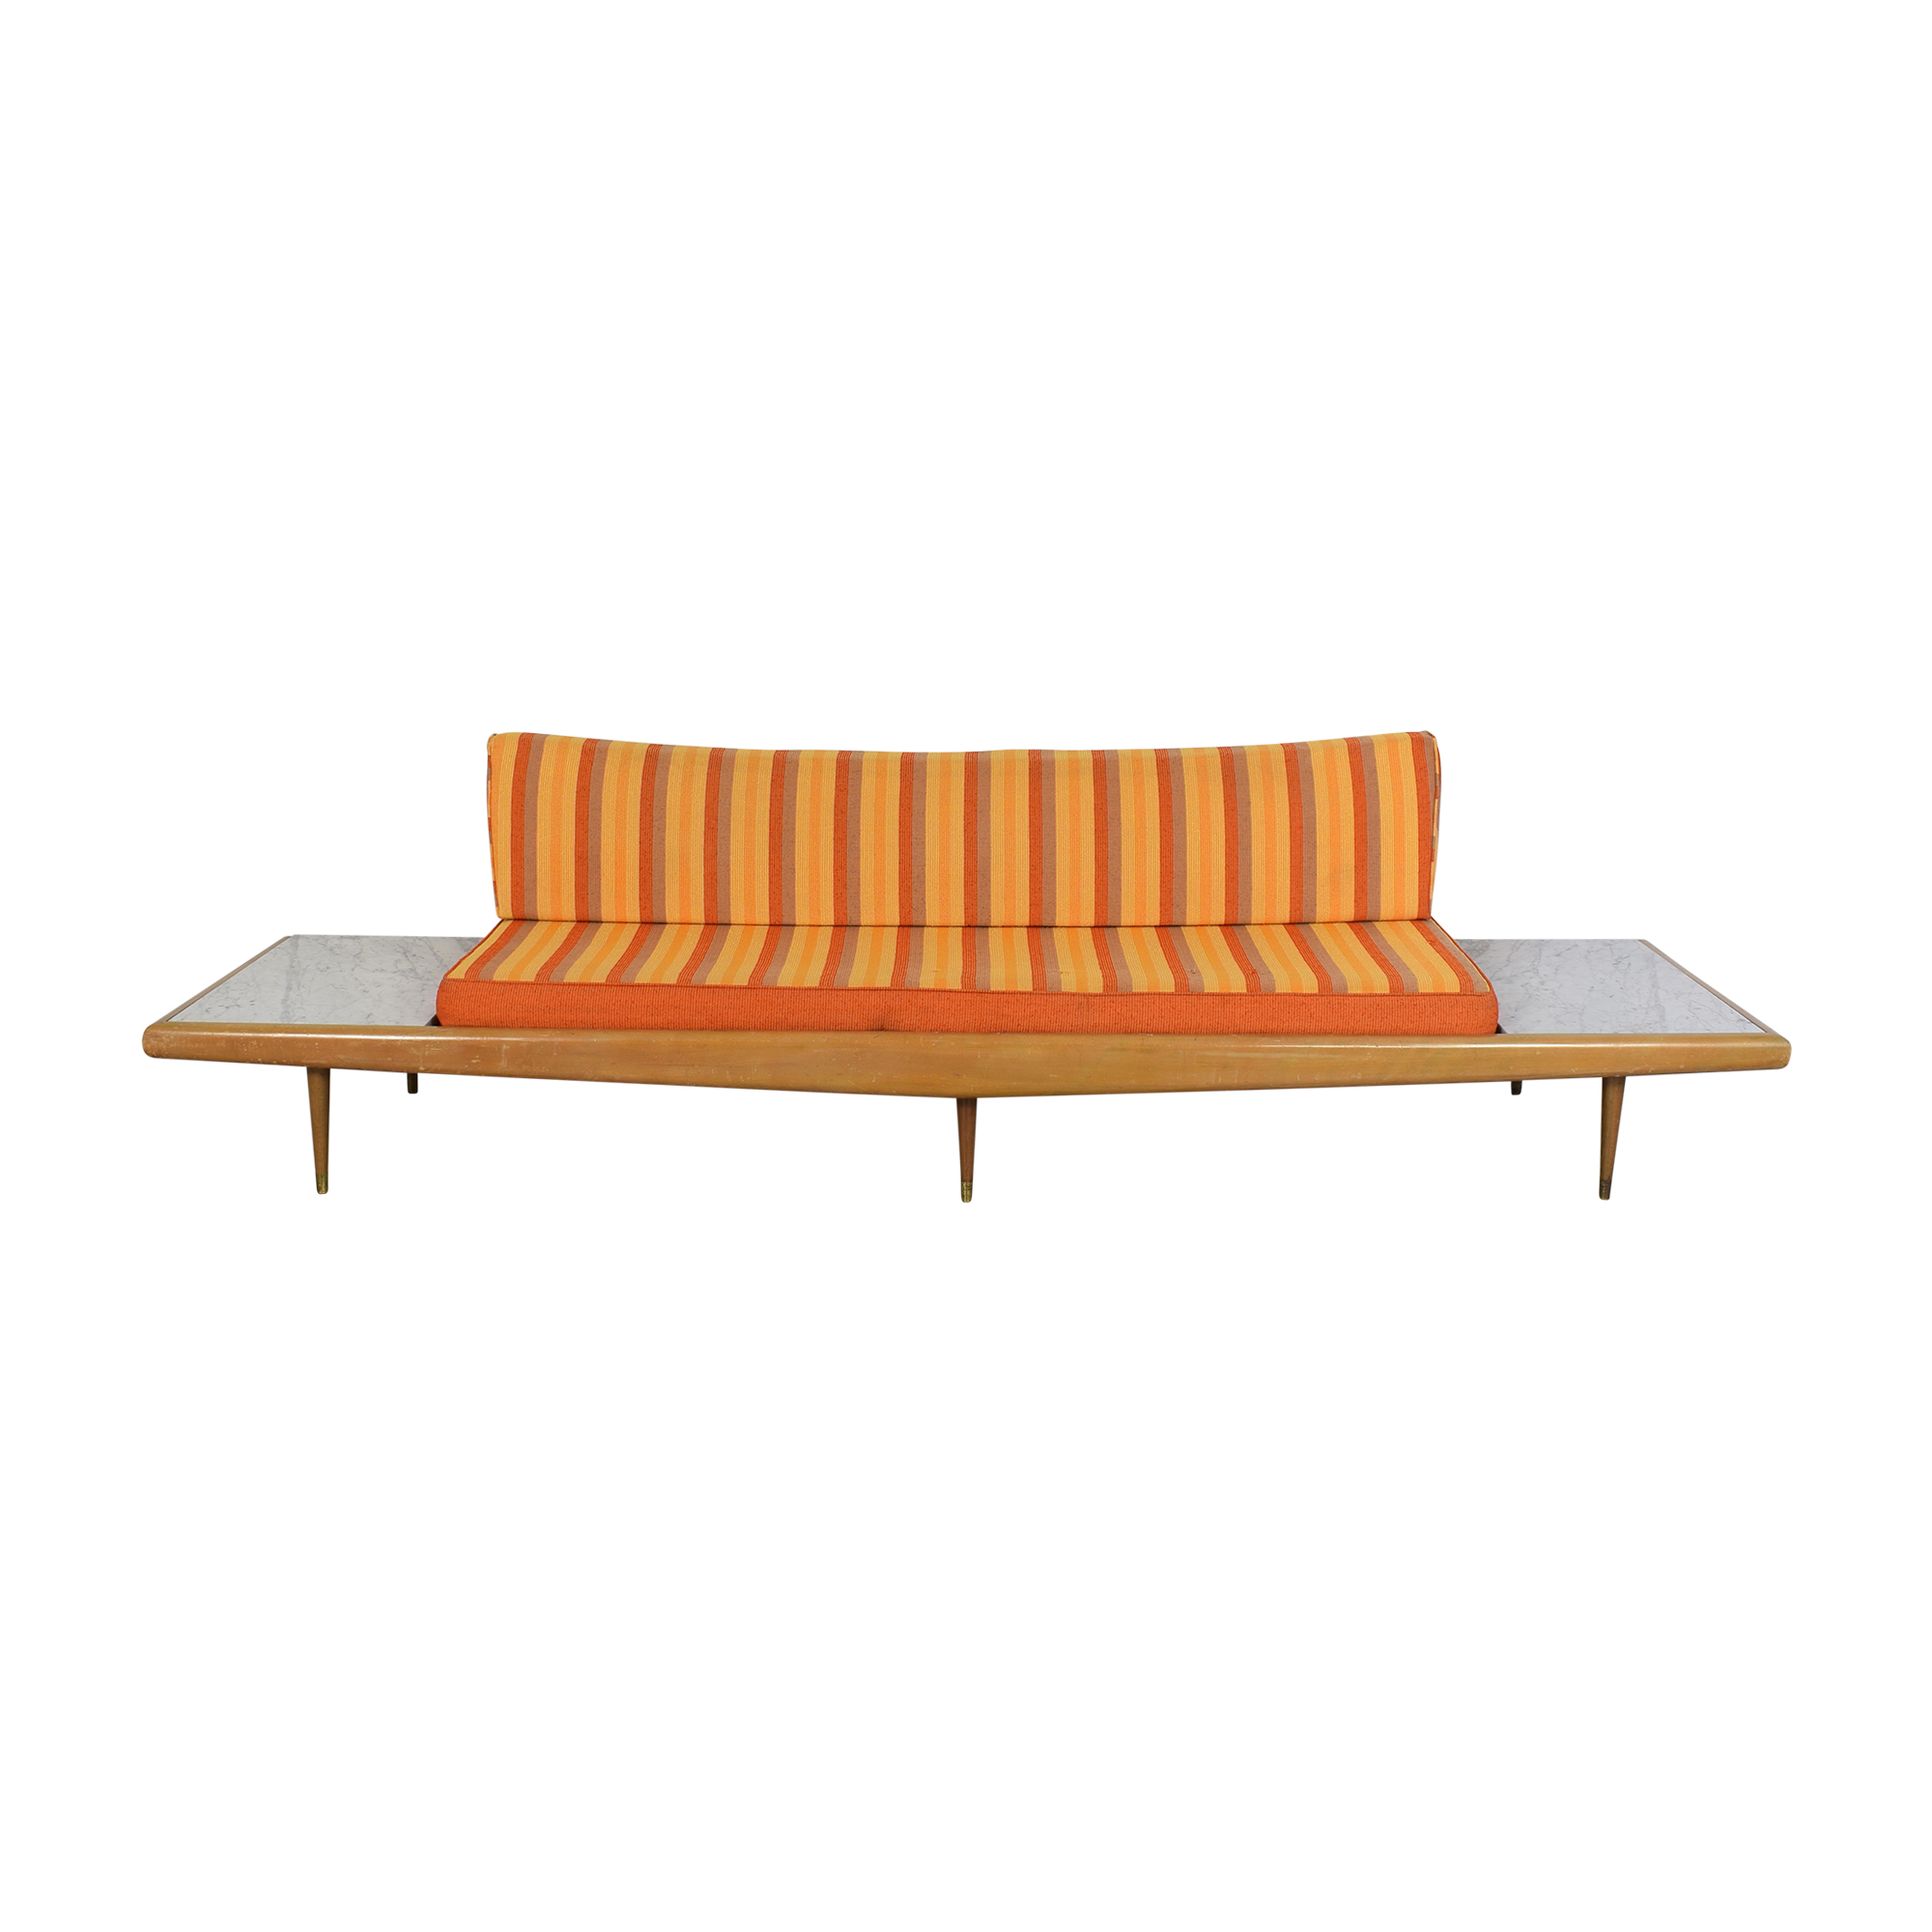 Craft Associates Craft Associates Adrian Pearsall Mid Century Sofa coupon